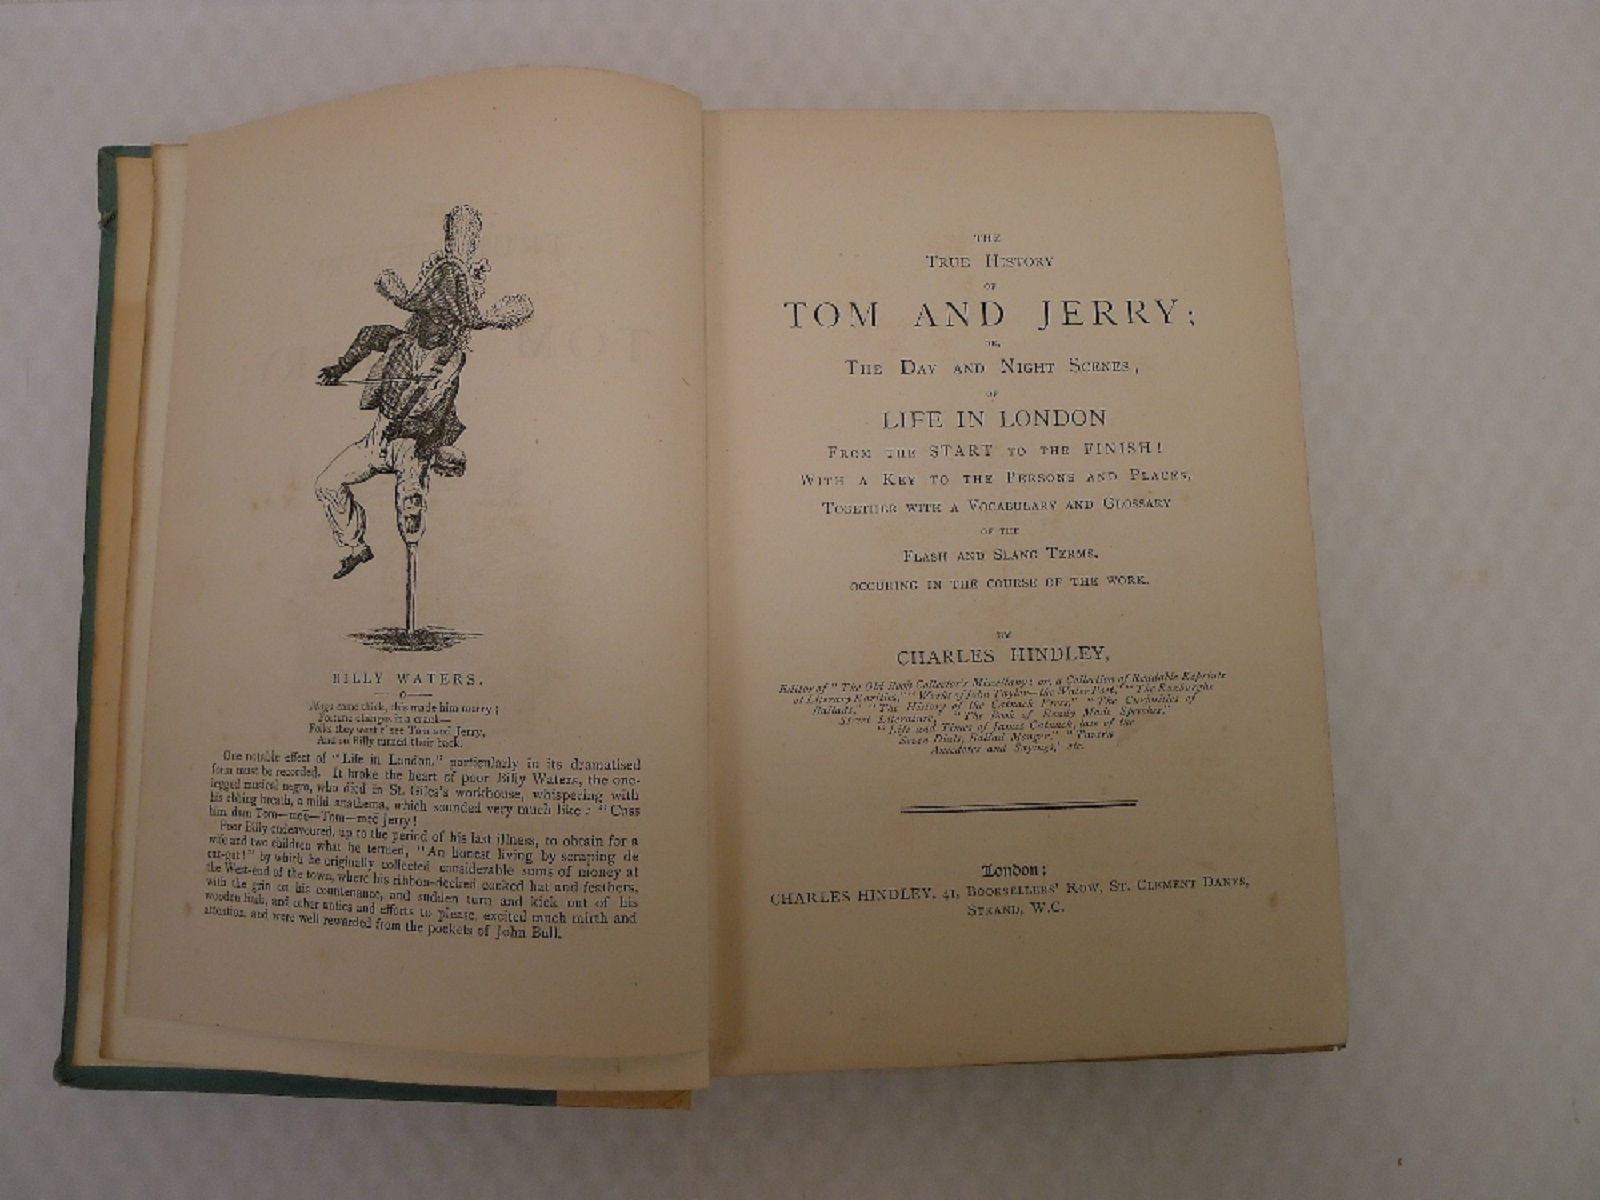 The True History of Tom and Jerry by Charles Hindley published in London circa 1892, bound in